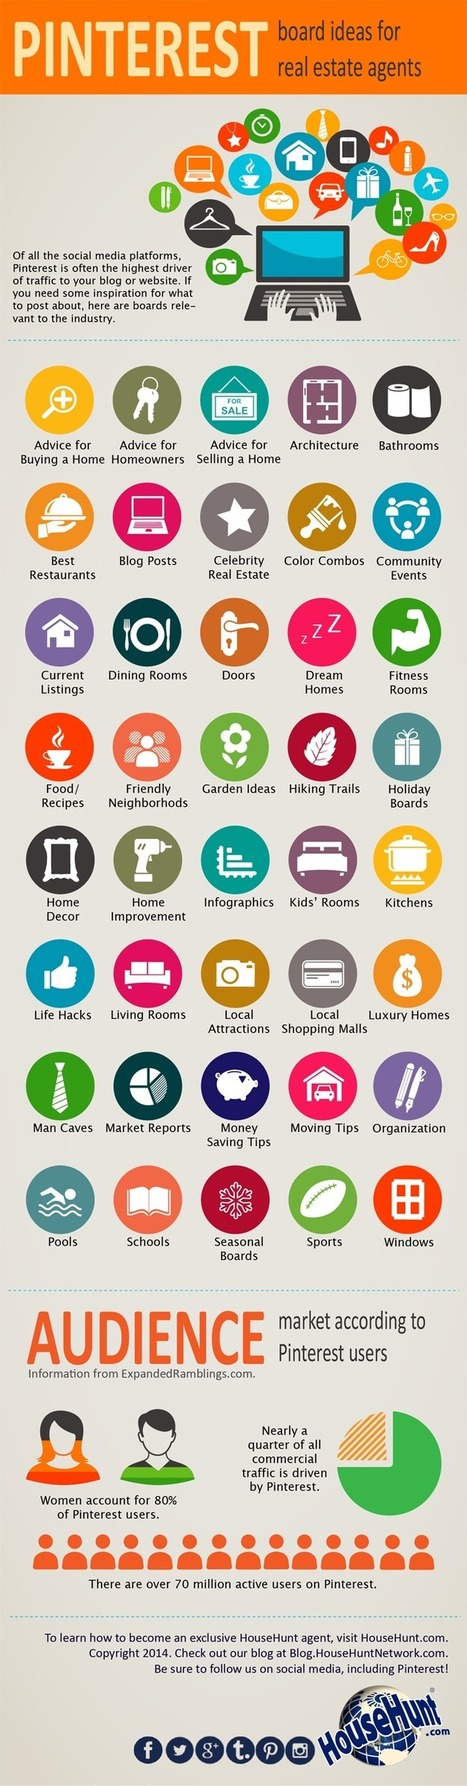 Pinterest Board Ideas for Real Estate Agents #infographic | MarketingHits | Scoop.it